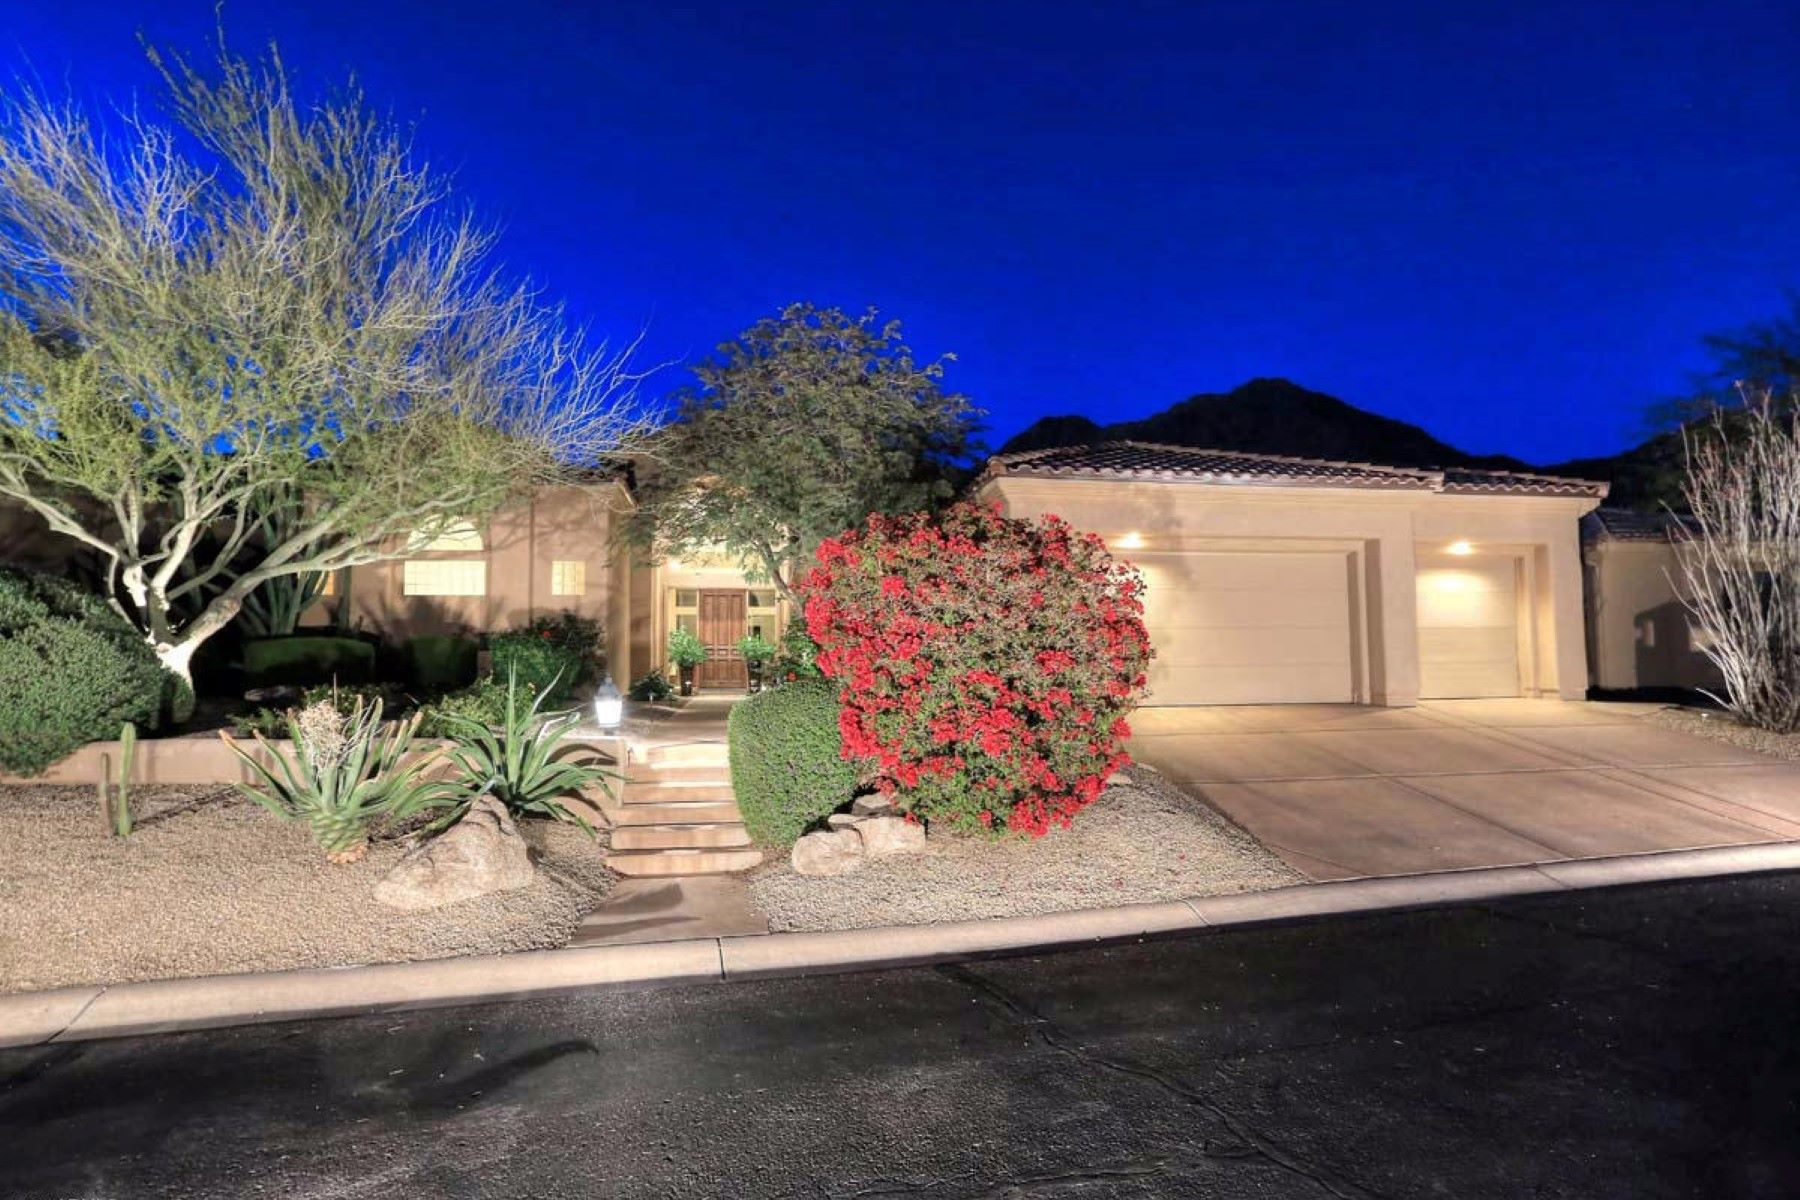 Villa per Vendita alle ore Truly exceptional home in Scottsdale Mountain 13664 E Wetherfield Rd Scottsdale, Arizona, 85259 Stati Uniti